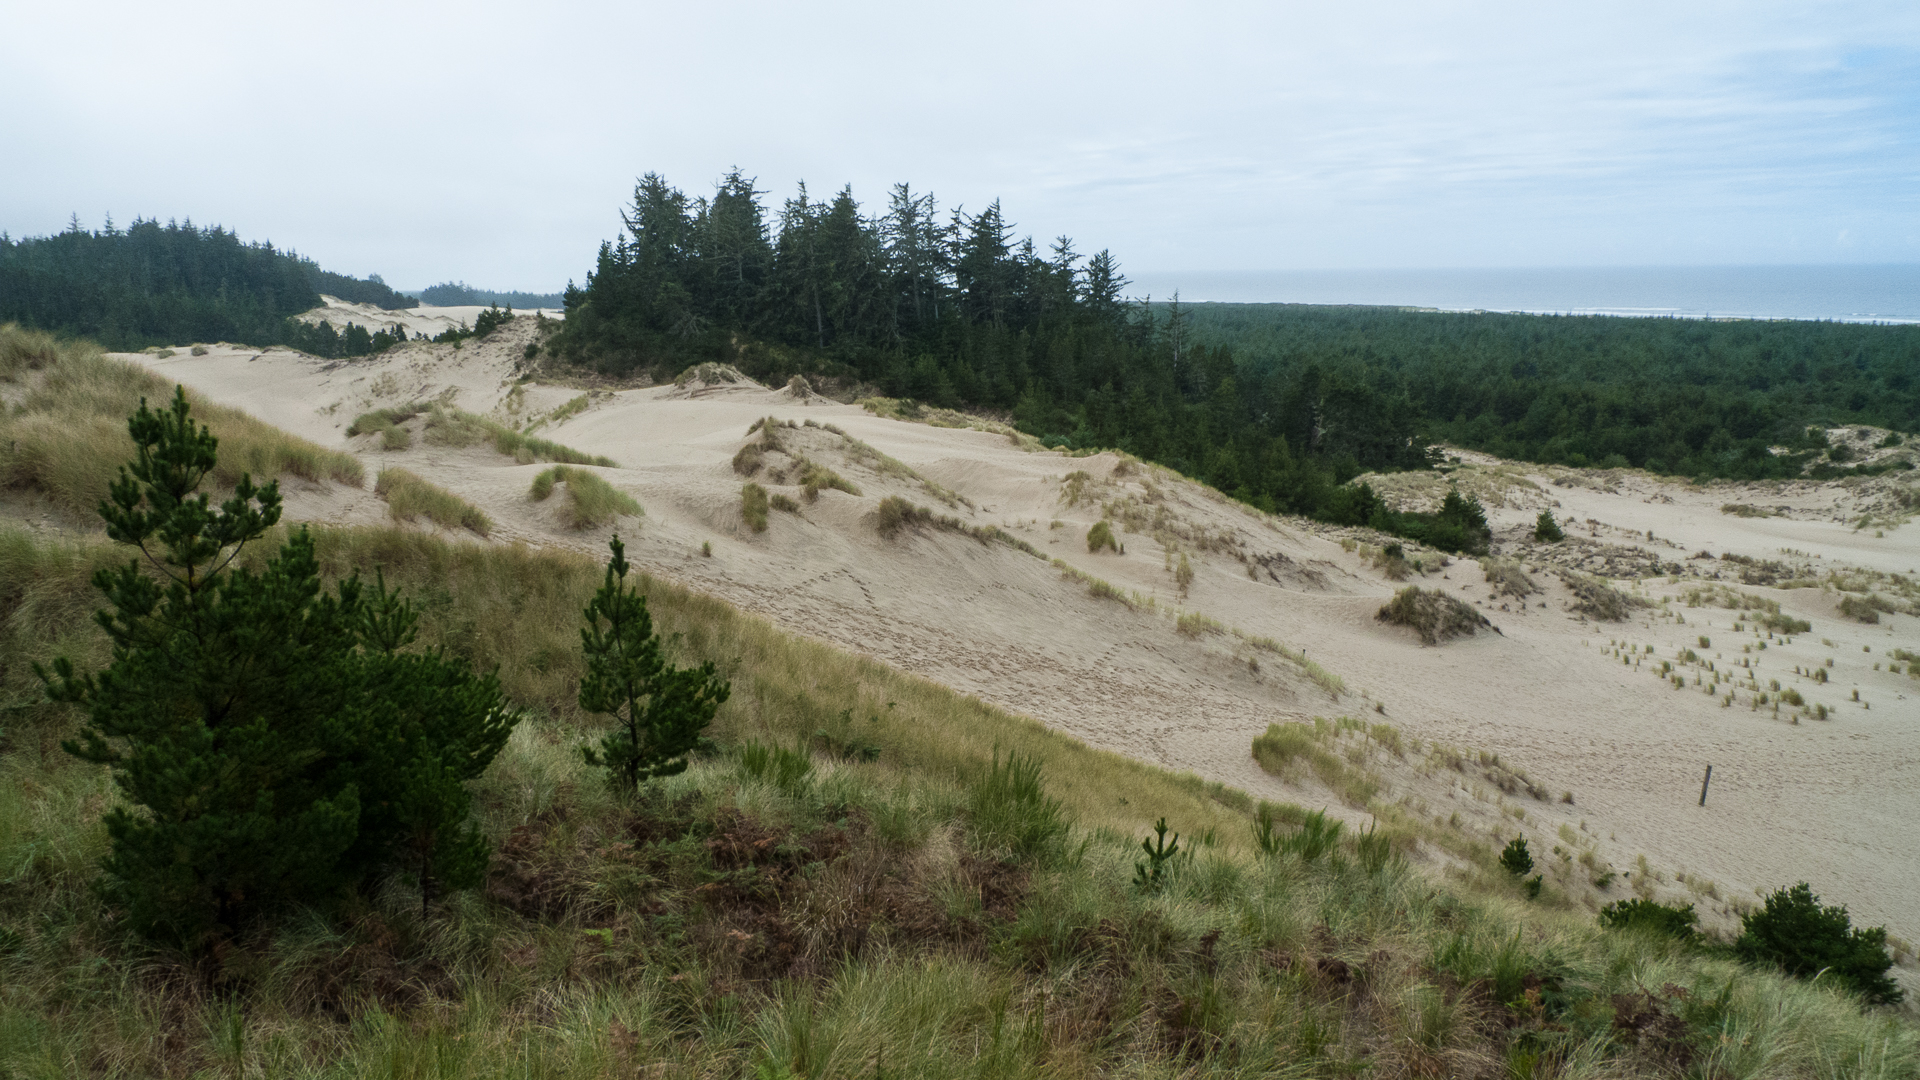 Some of the crazy sand dunes.